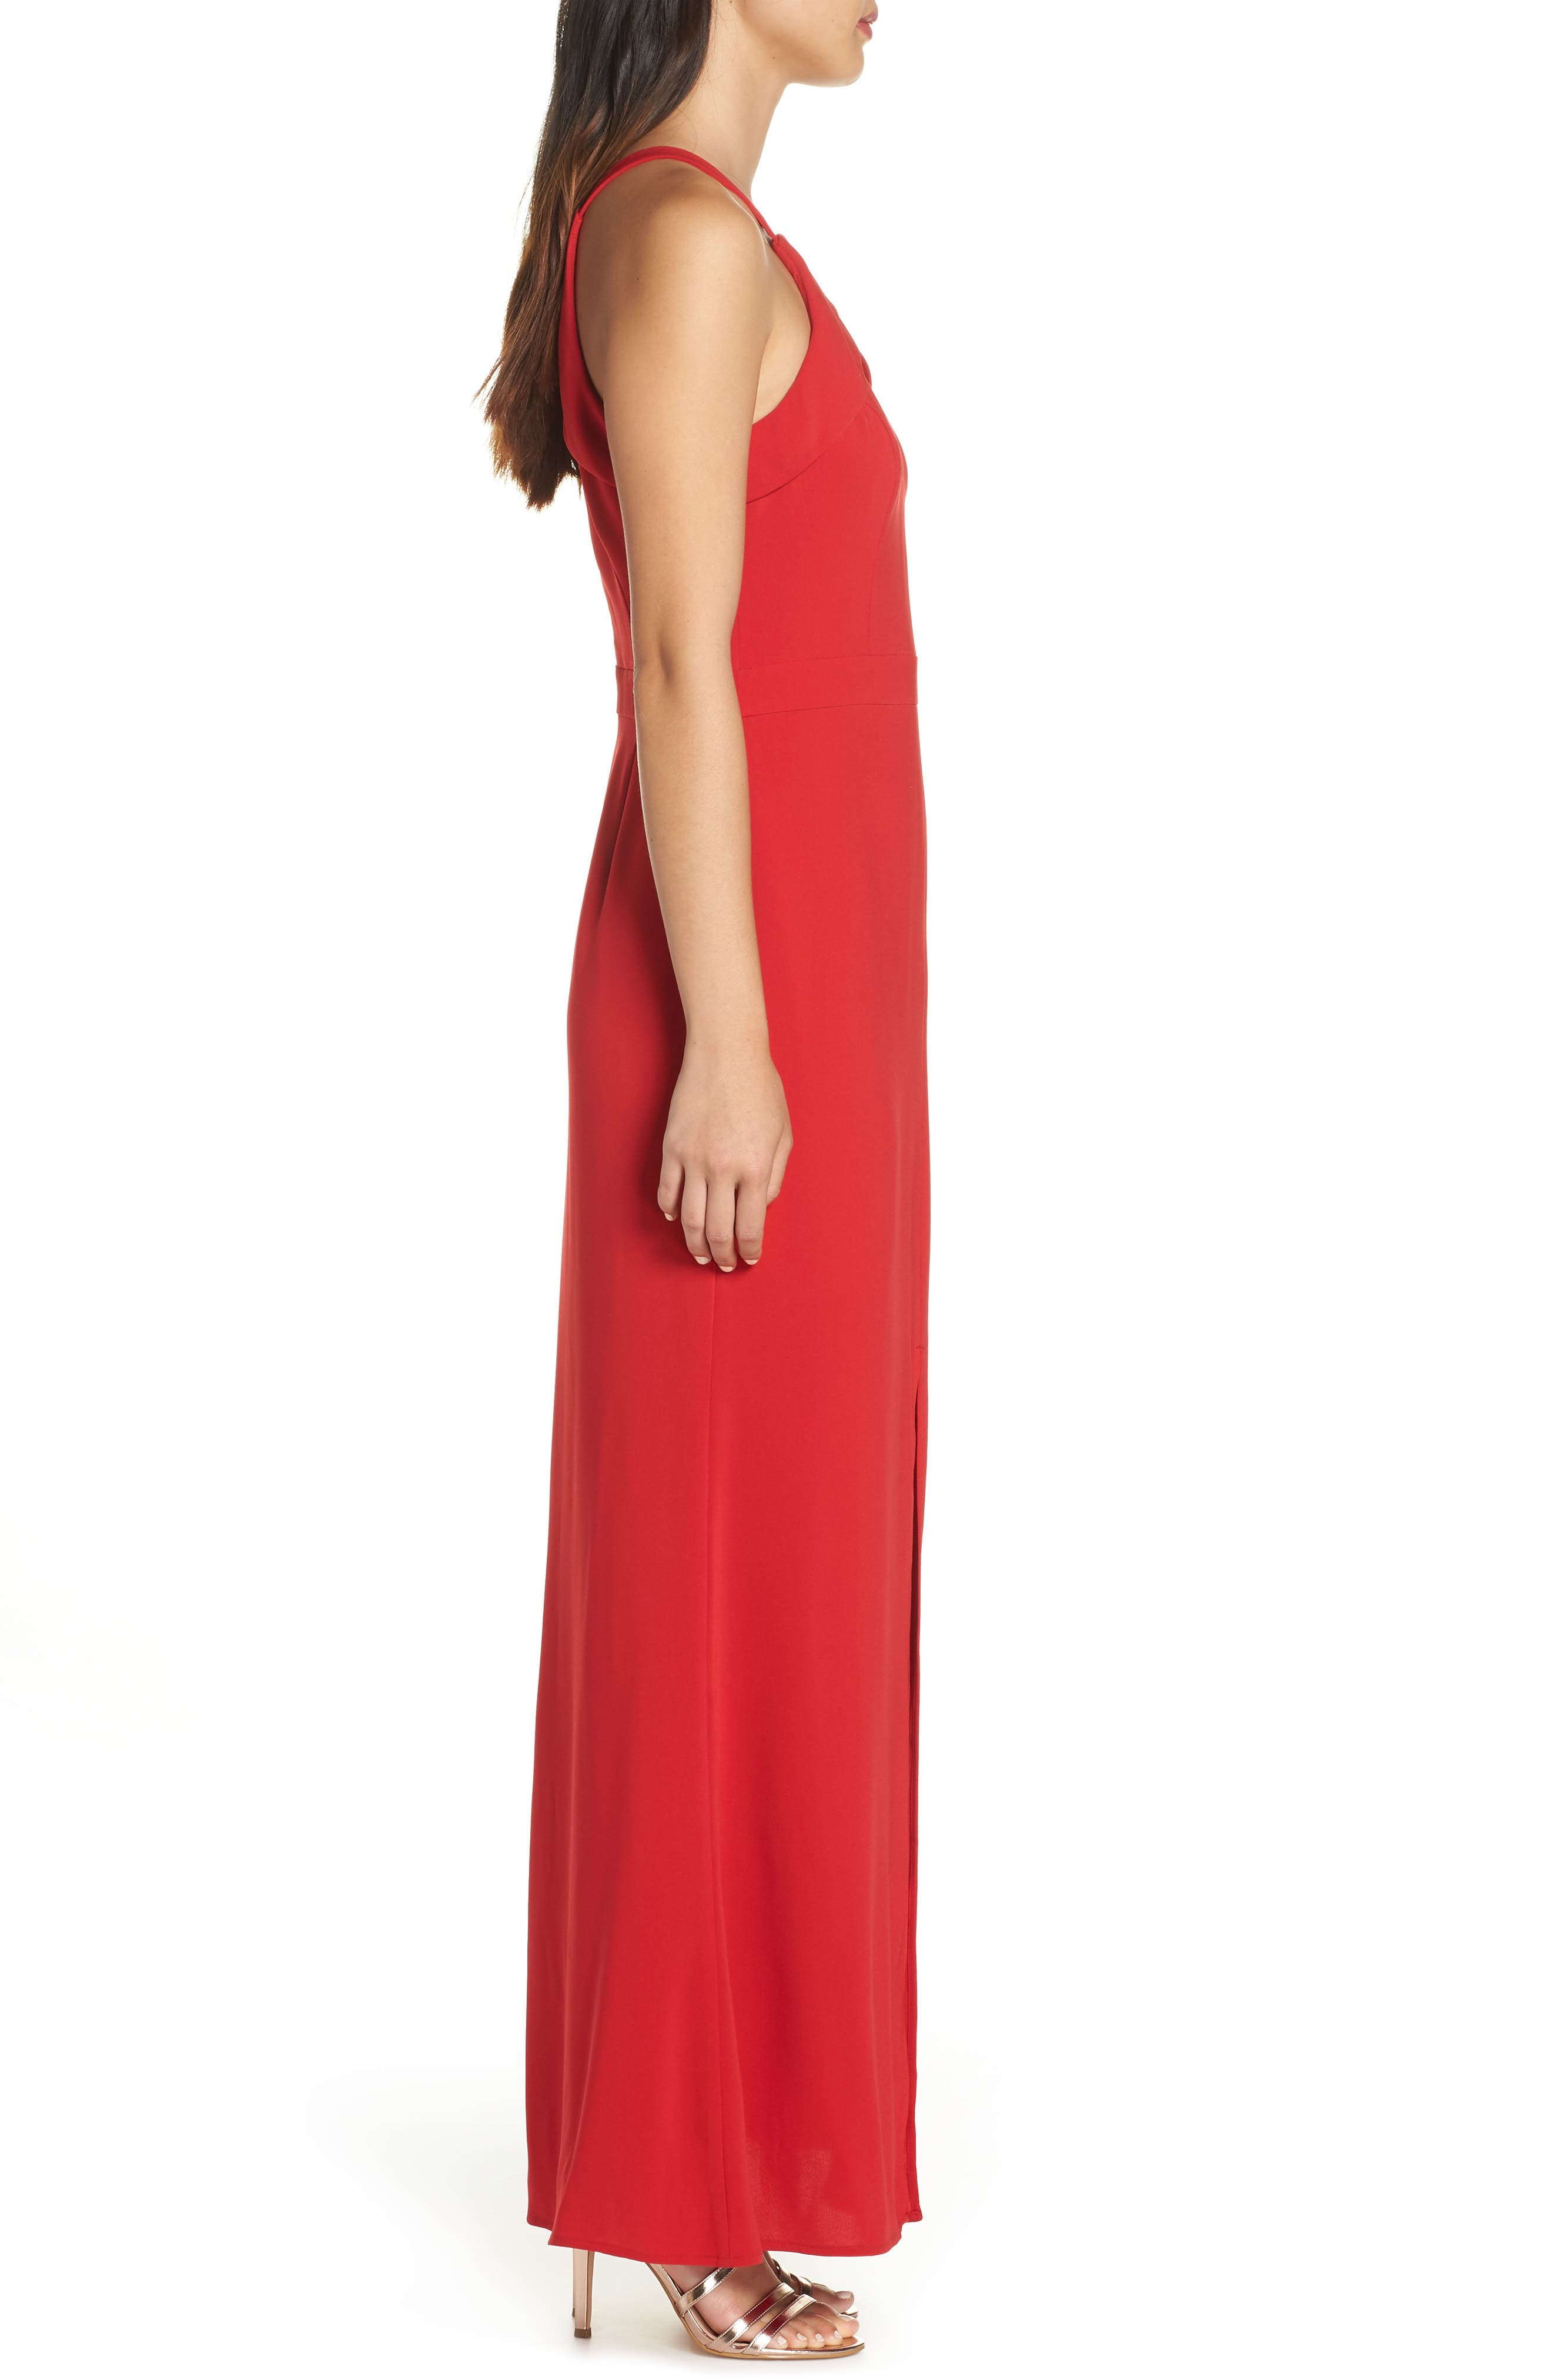 HARLYN,                             Keyhole Bodice Gown,                             Alternate thumbnail 4, color,                             RED